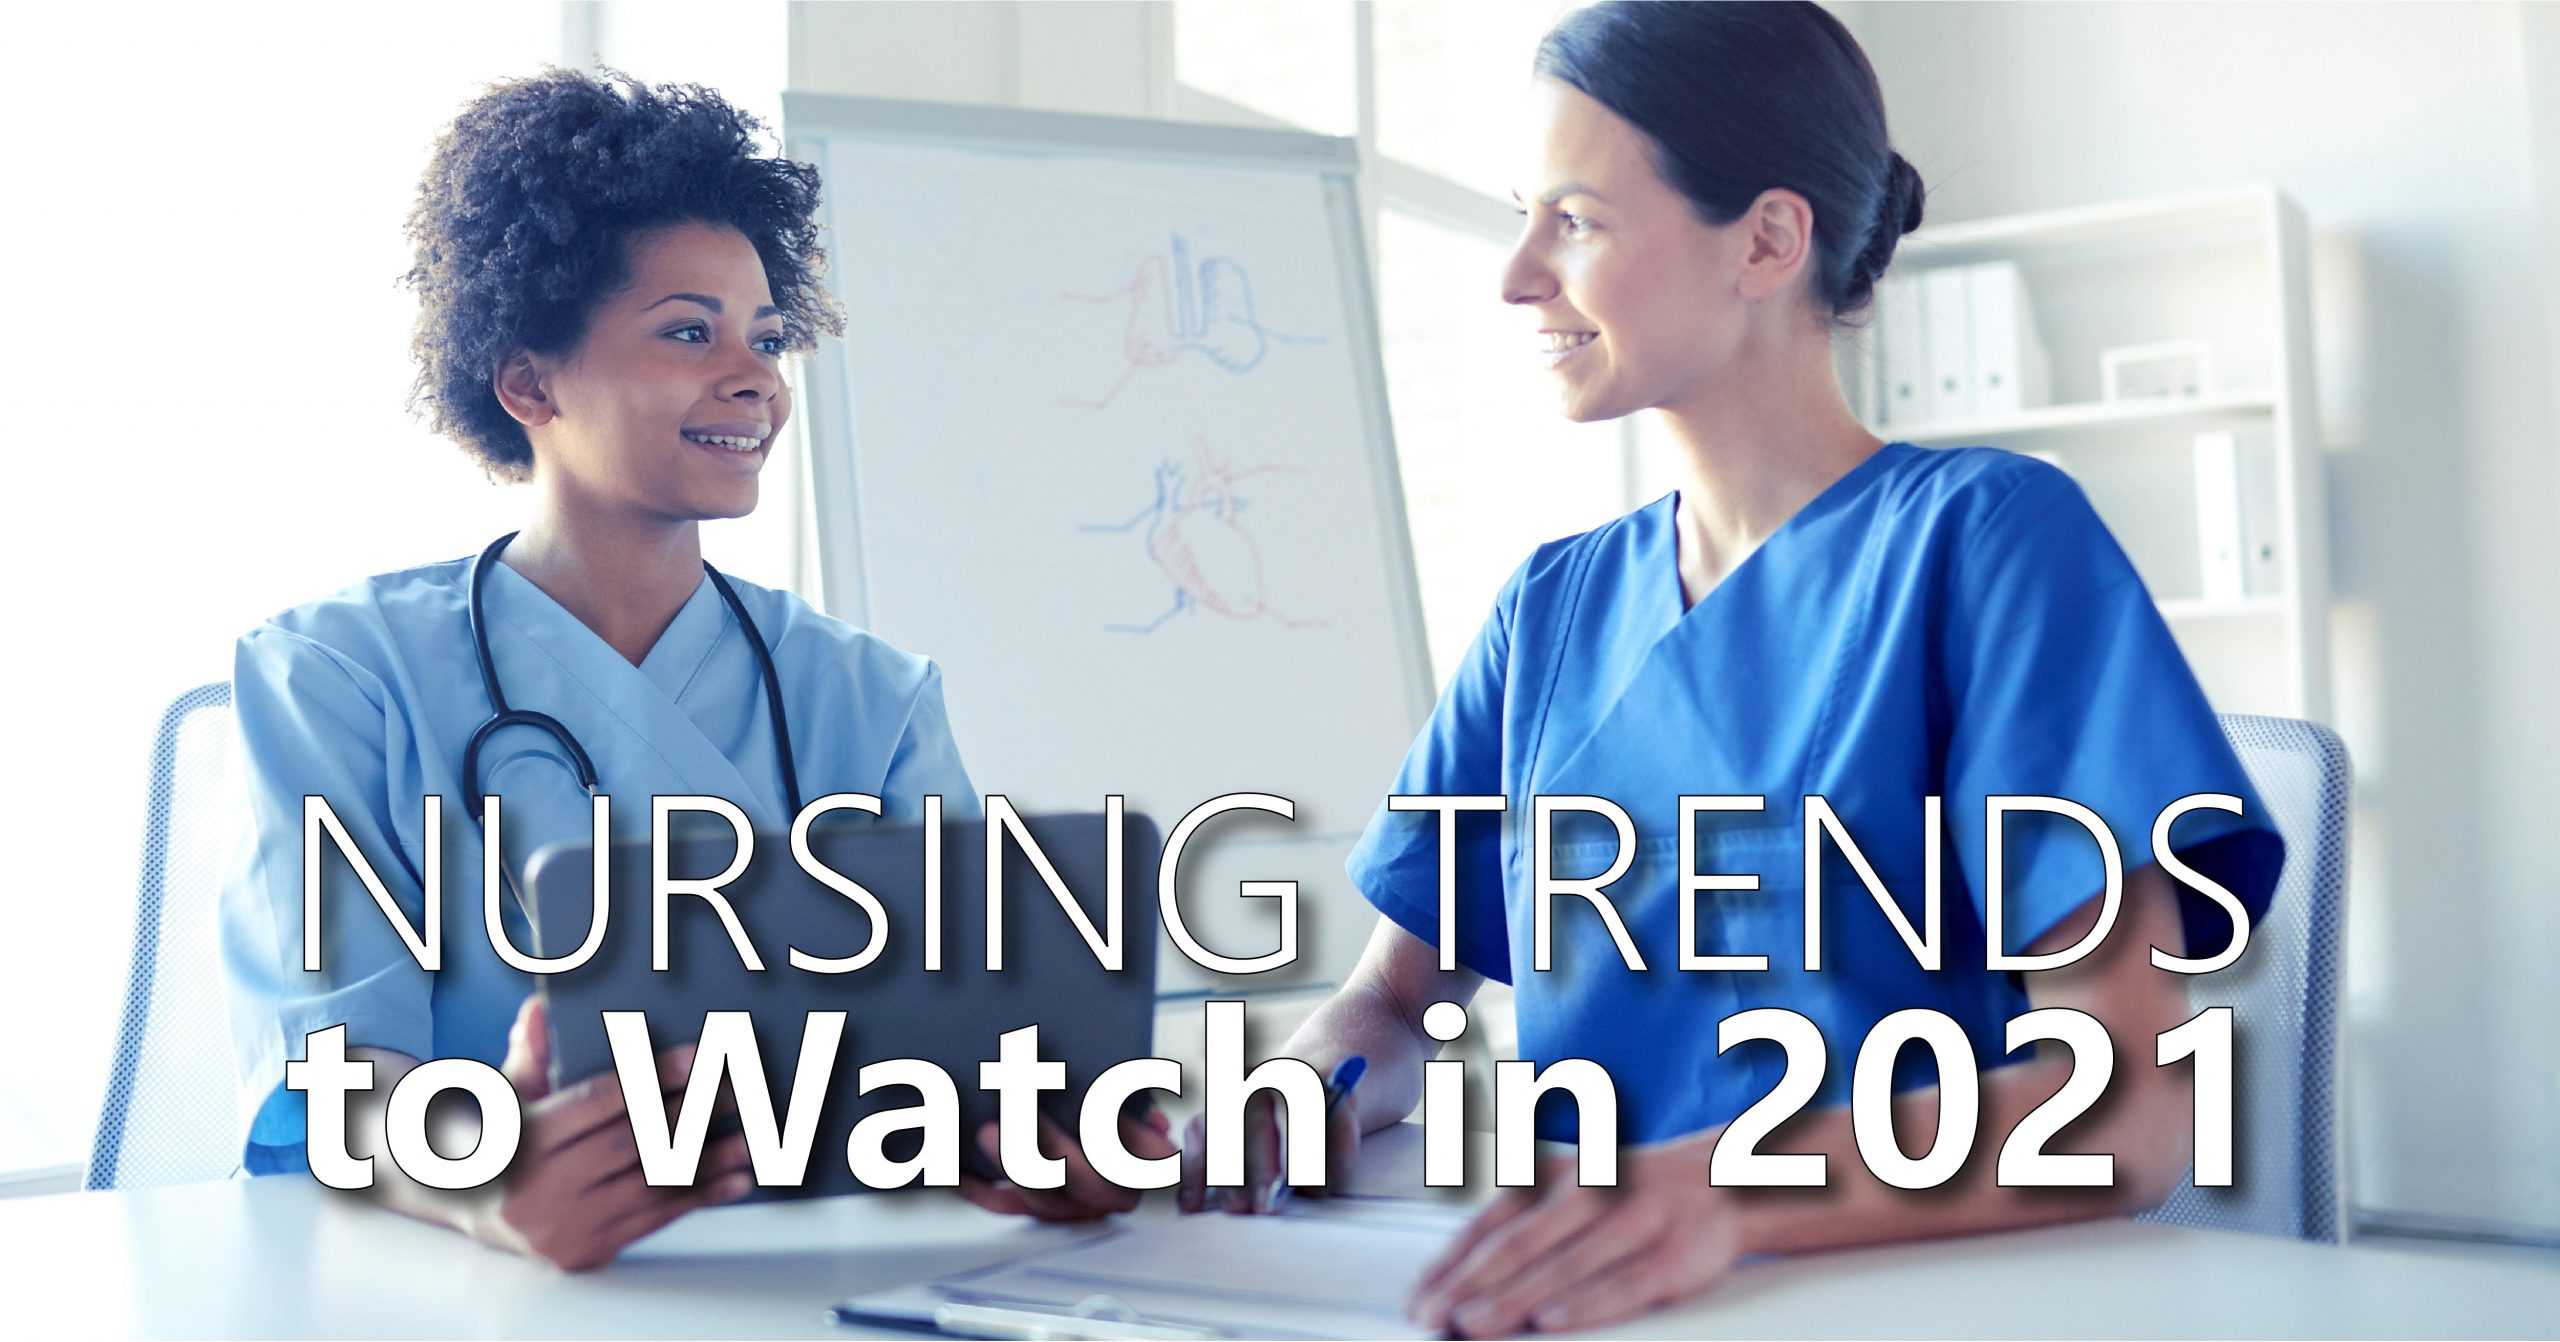 """Two nurses are smiling, facing each other in discussion. The female nurse on the left is holding a tablet device and wearing a stethoscope. The name of the article, """"Nursing Trends to Watch in 2021"""" is centered across the bottom of the image"""